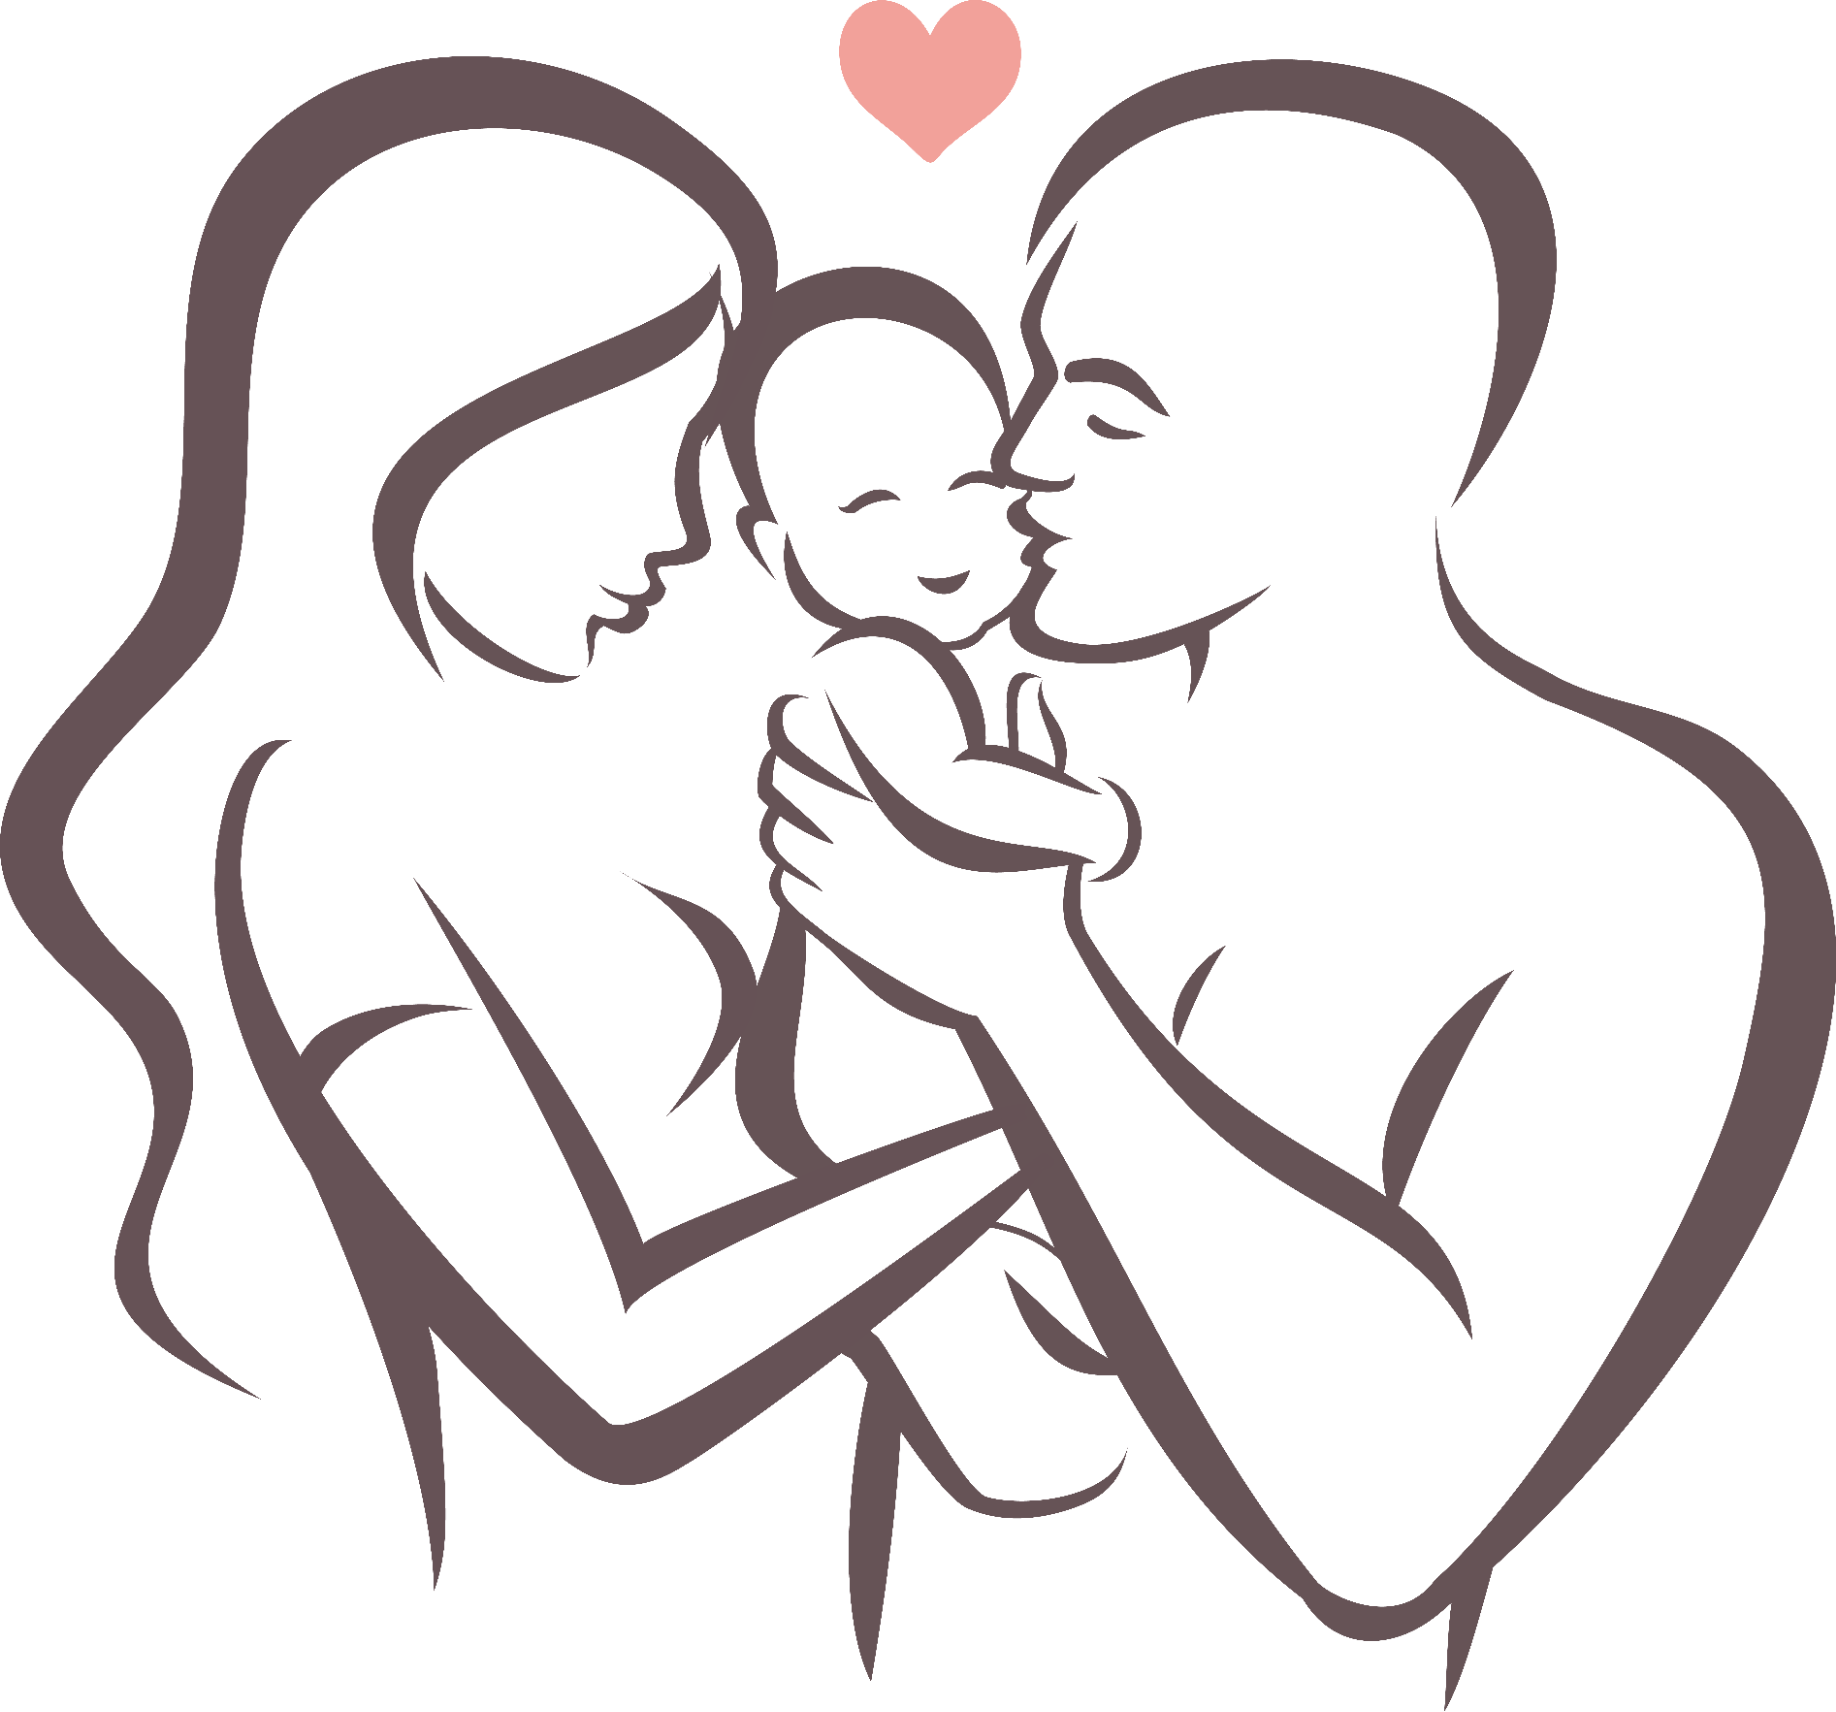 Mother Father And Baby Drawing Free Download Best Mother Father And Baby Drawing On Clipartmag Com In 2020 Baby Drawing Baby Clip Art Mothers Day Drawings